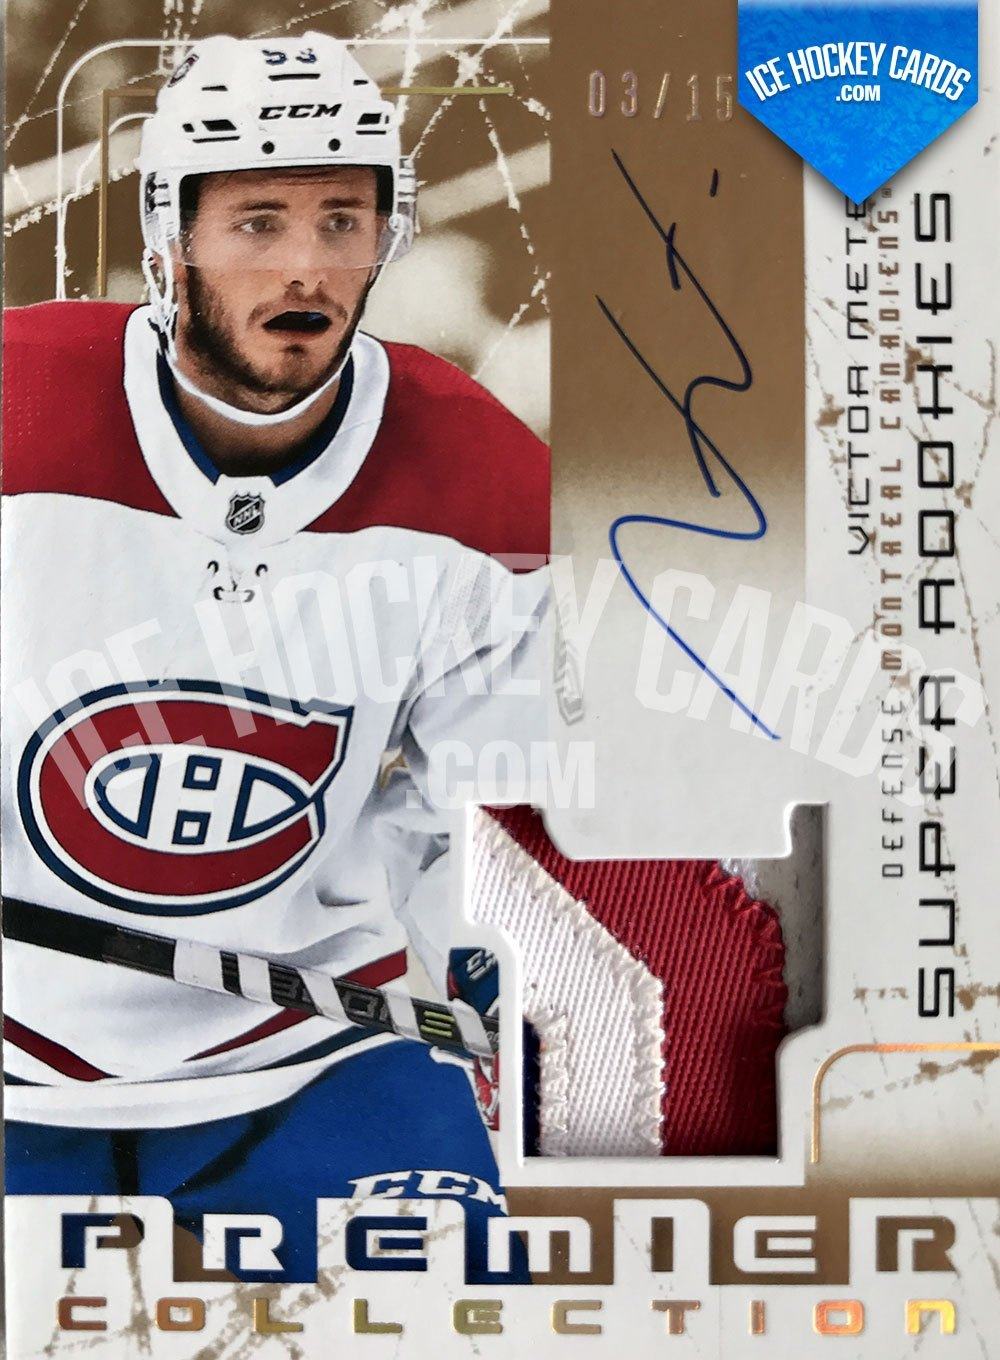 Upper Deck - Premier Hockey 2017-18 - Victor Mete Super Rookies Auto Patch RC - # to 15 RARE